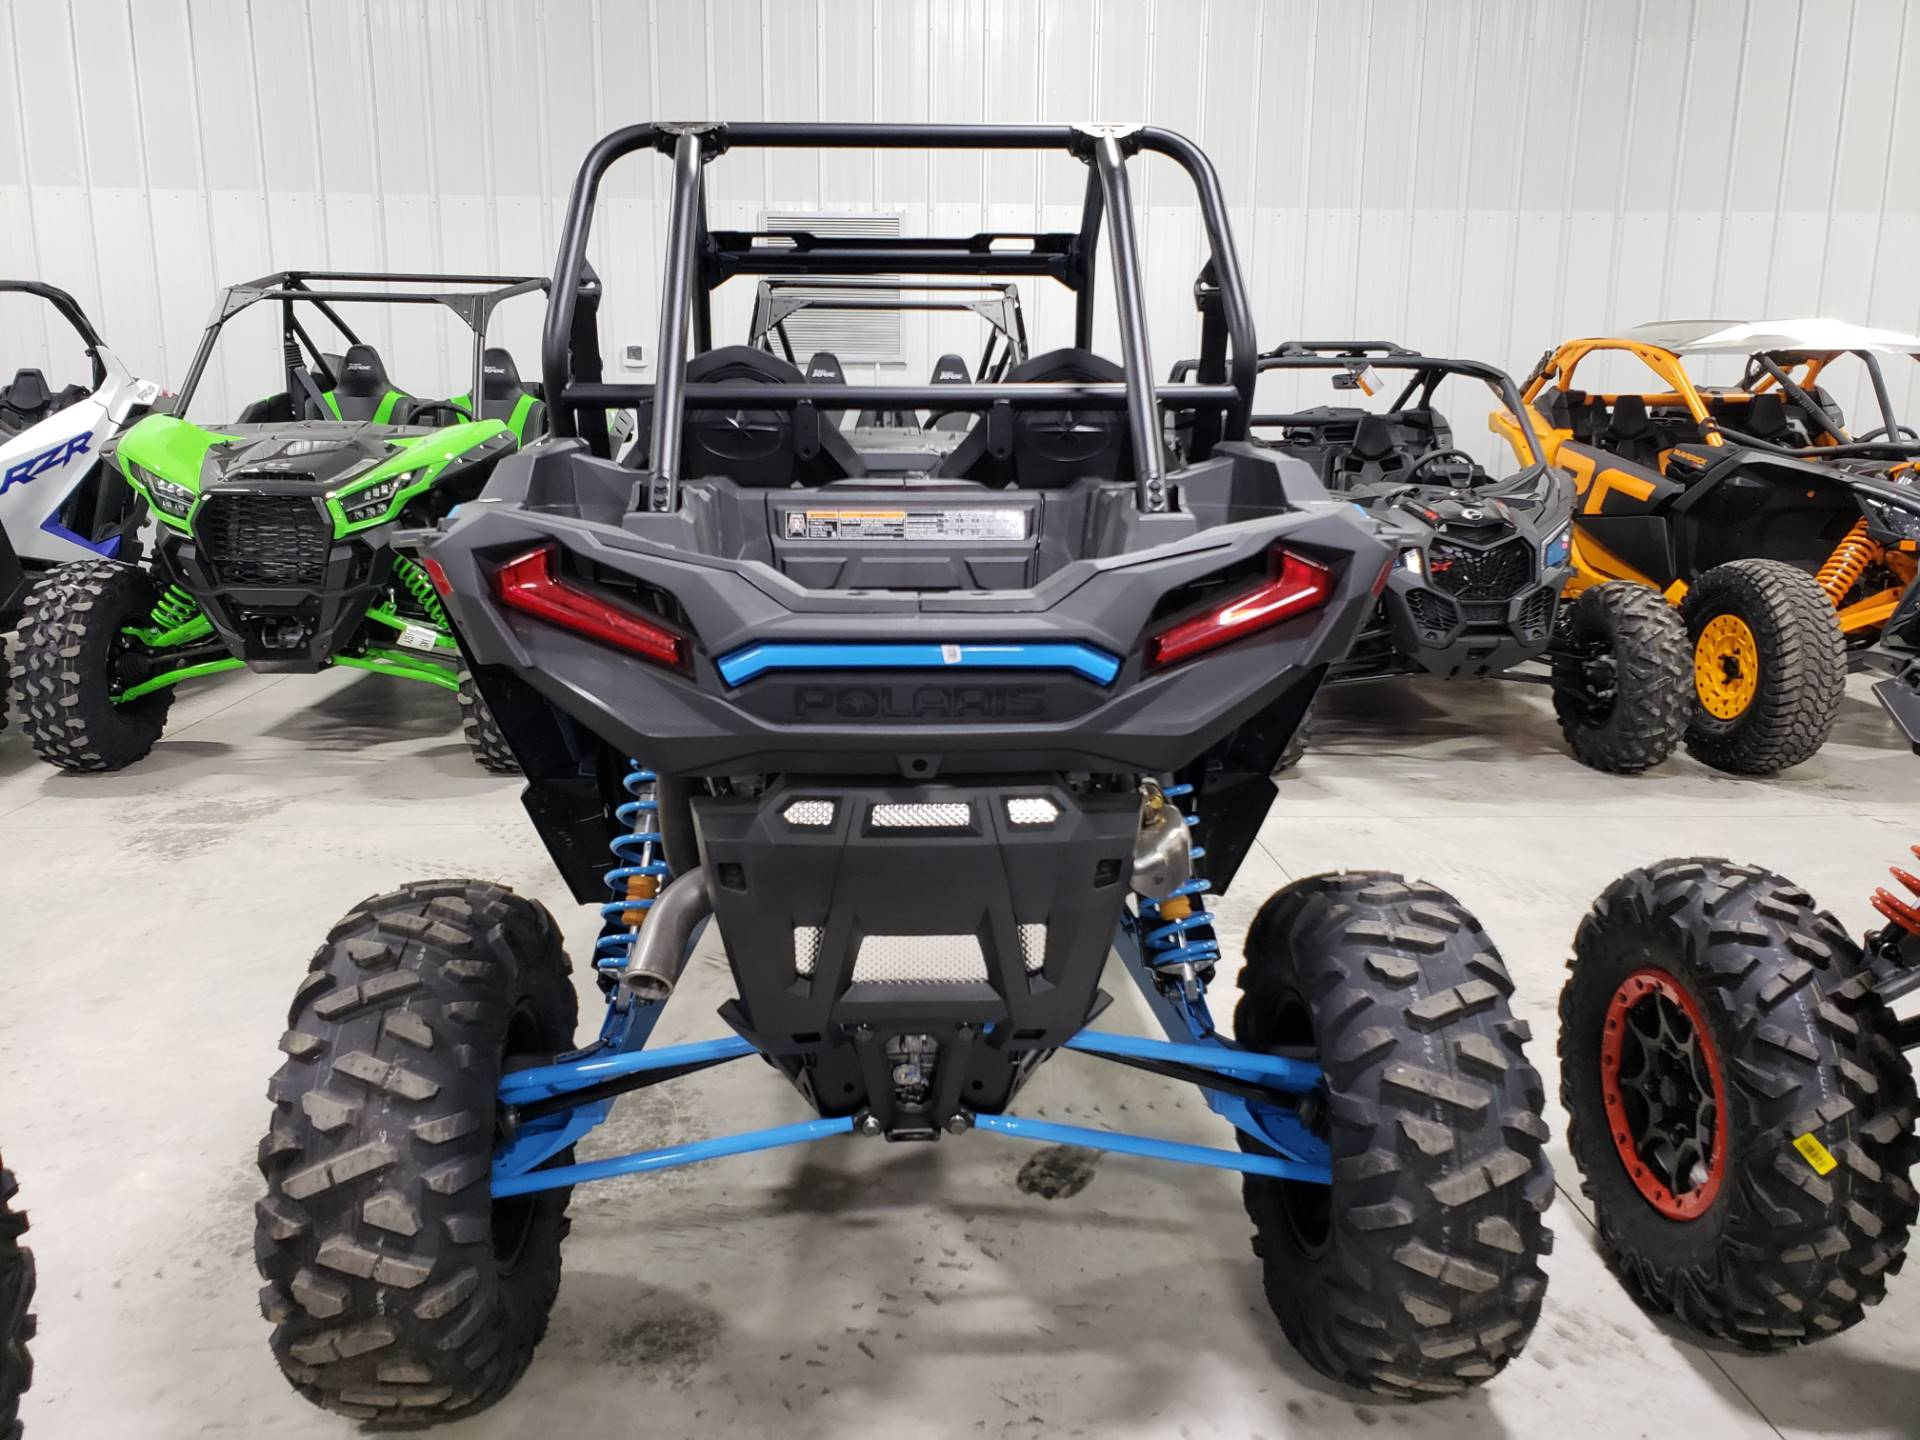 2020 Polaris RZR XP 1000 in Cambridge, Ohio - Photo 4